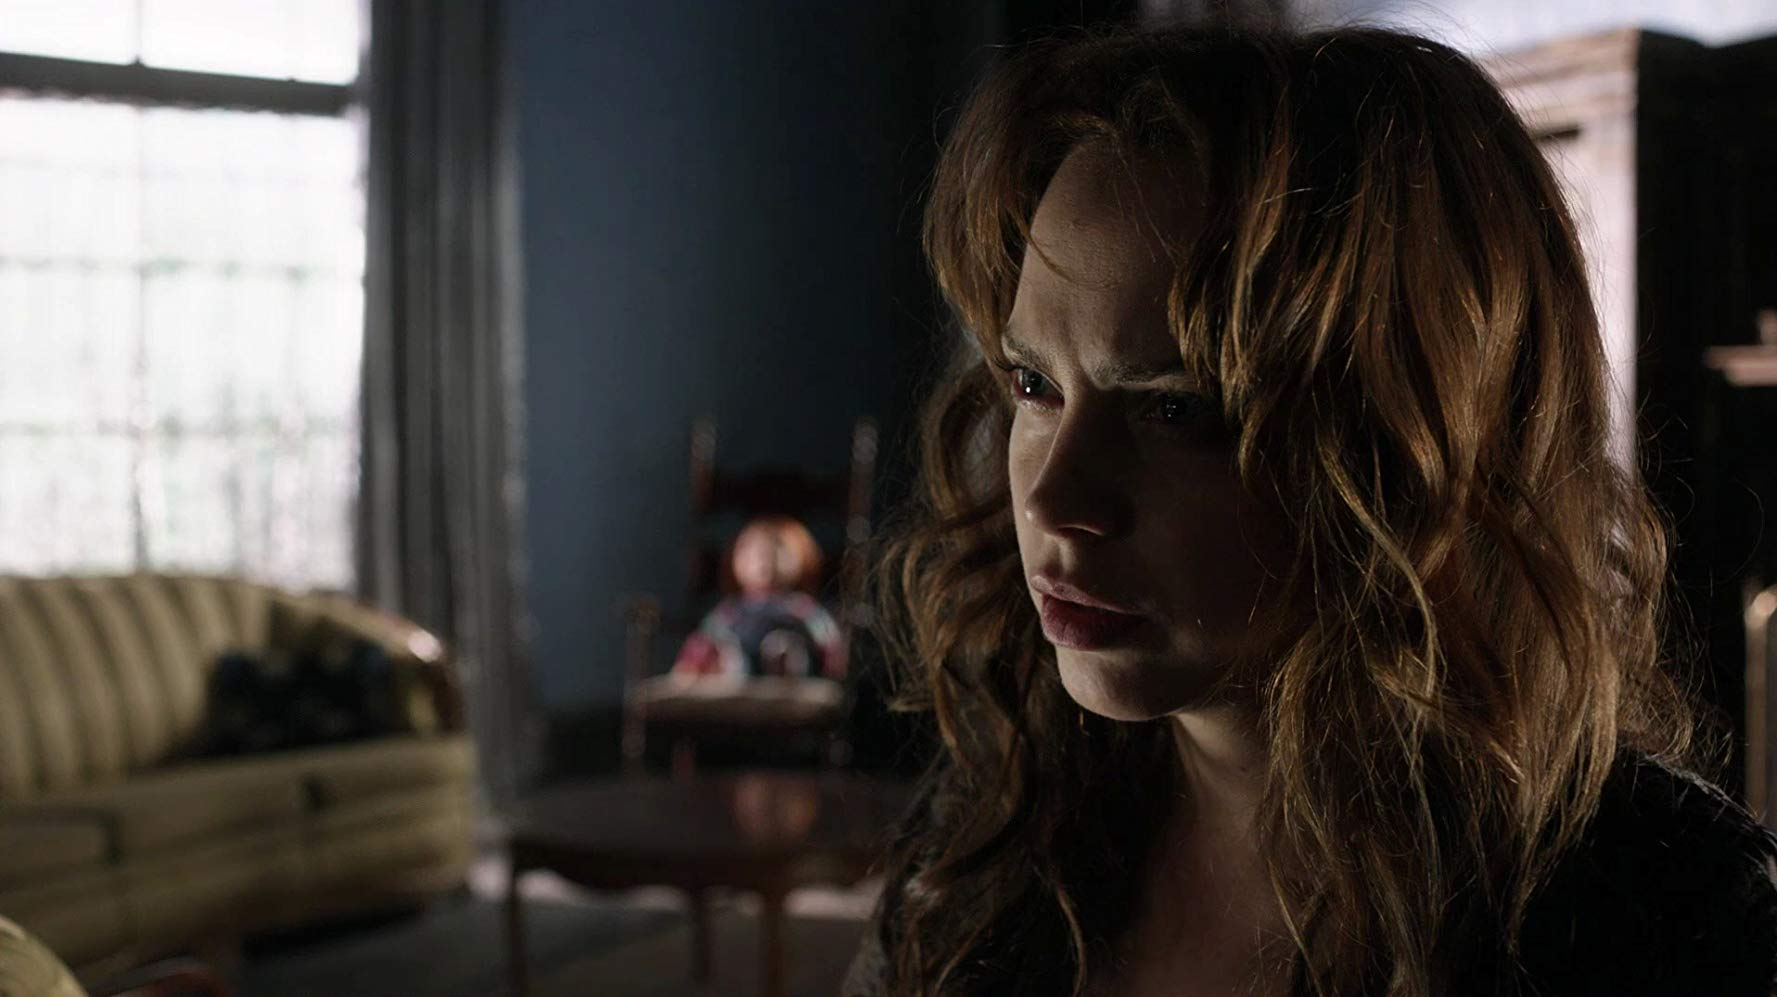 Brad Dourif's daughter Fiona with Chucky in the background in Curse of Chucky (2013)